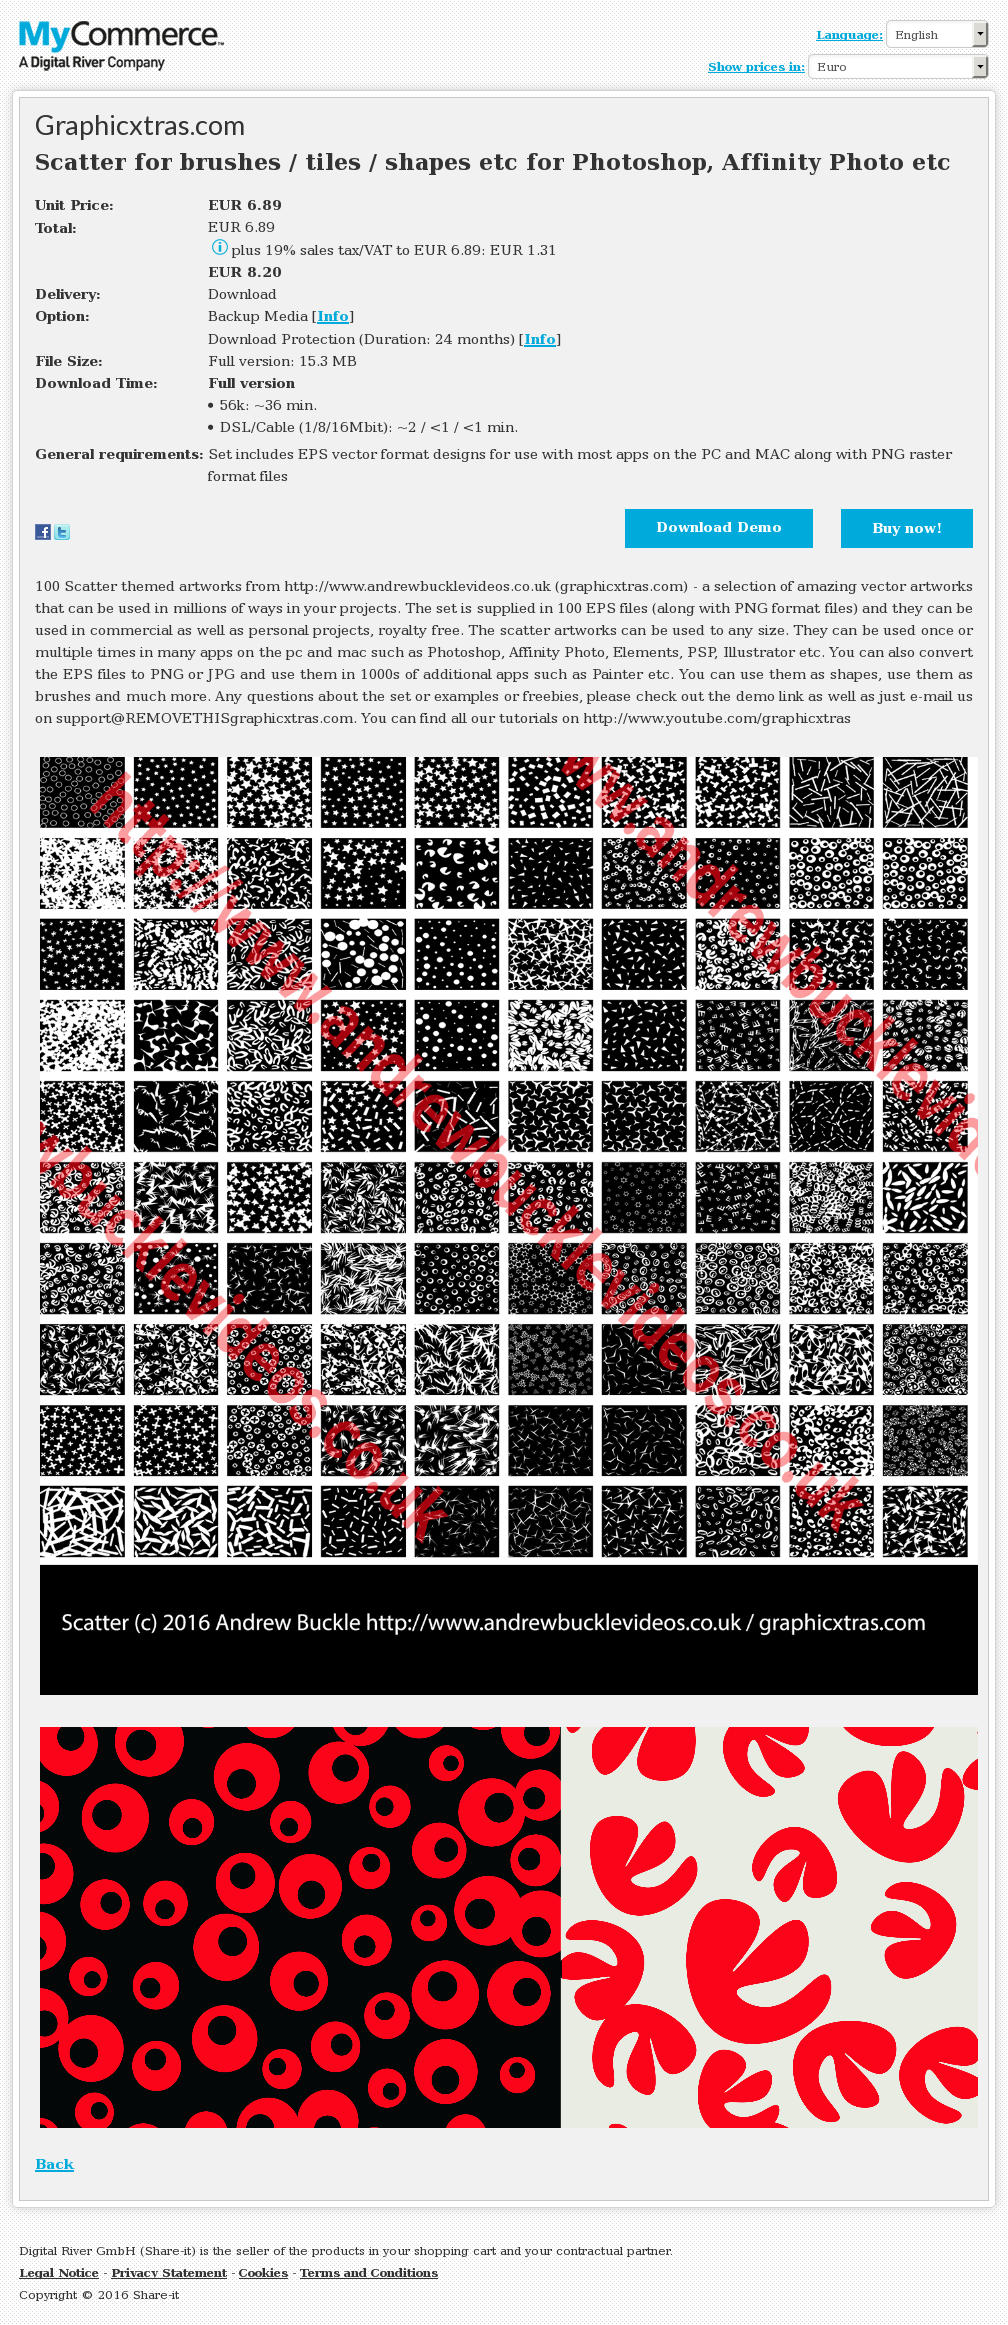 Scatter for brushes / tiles / shapes etc for Photoshop, Affinity Photo etc